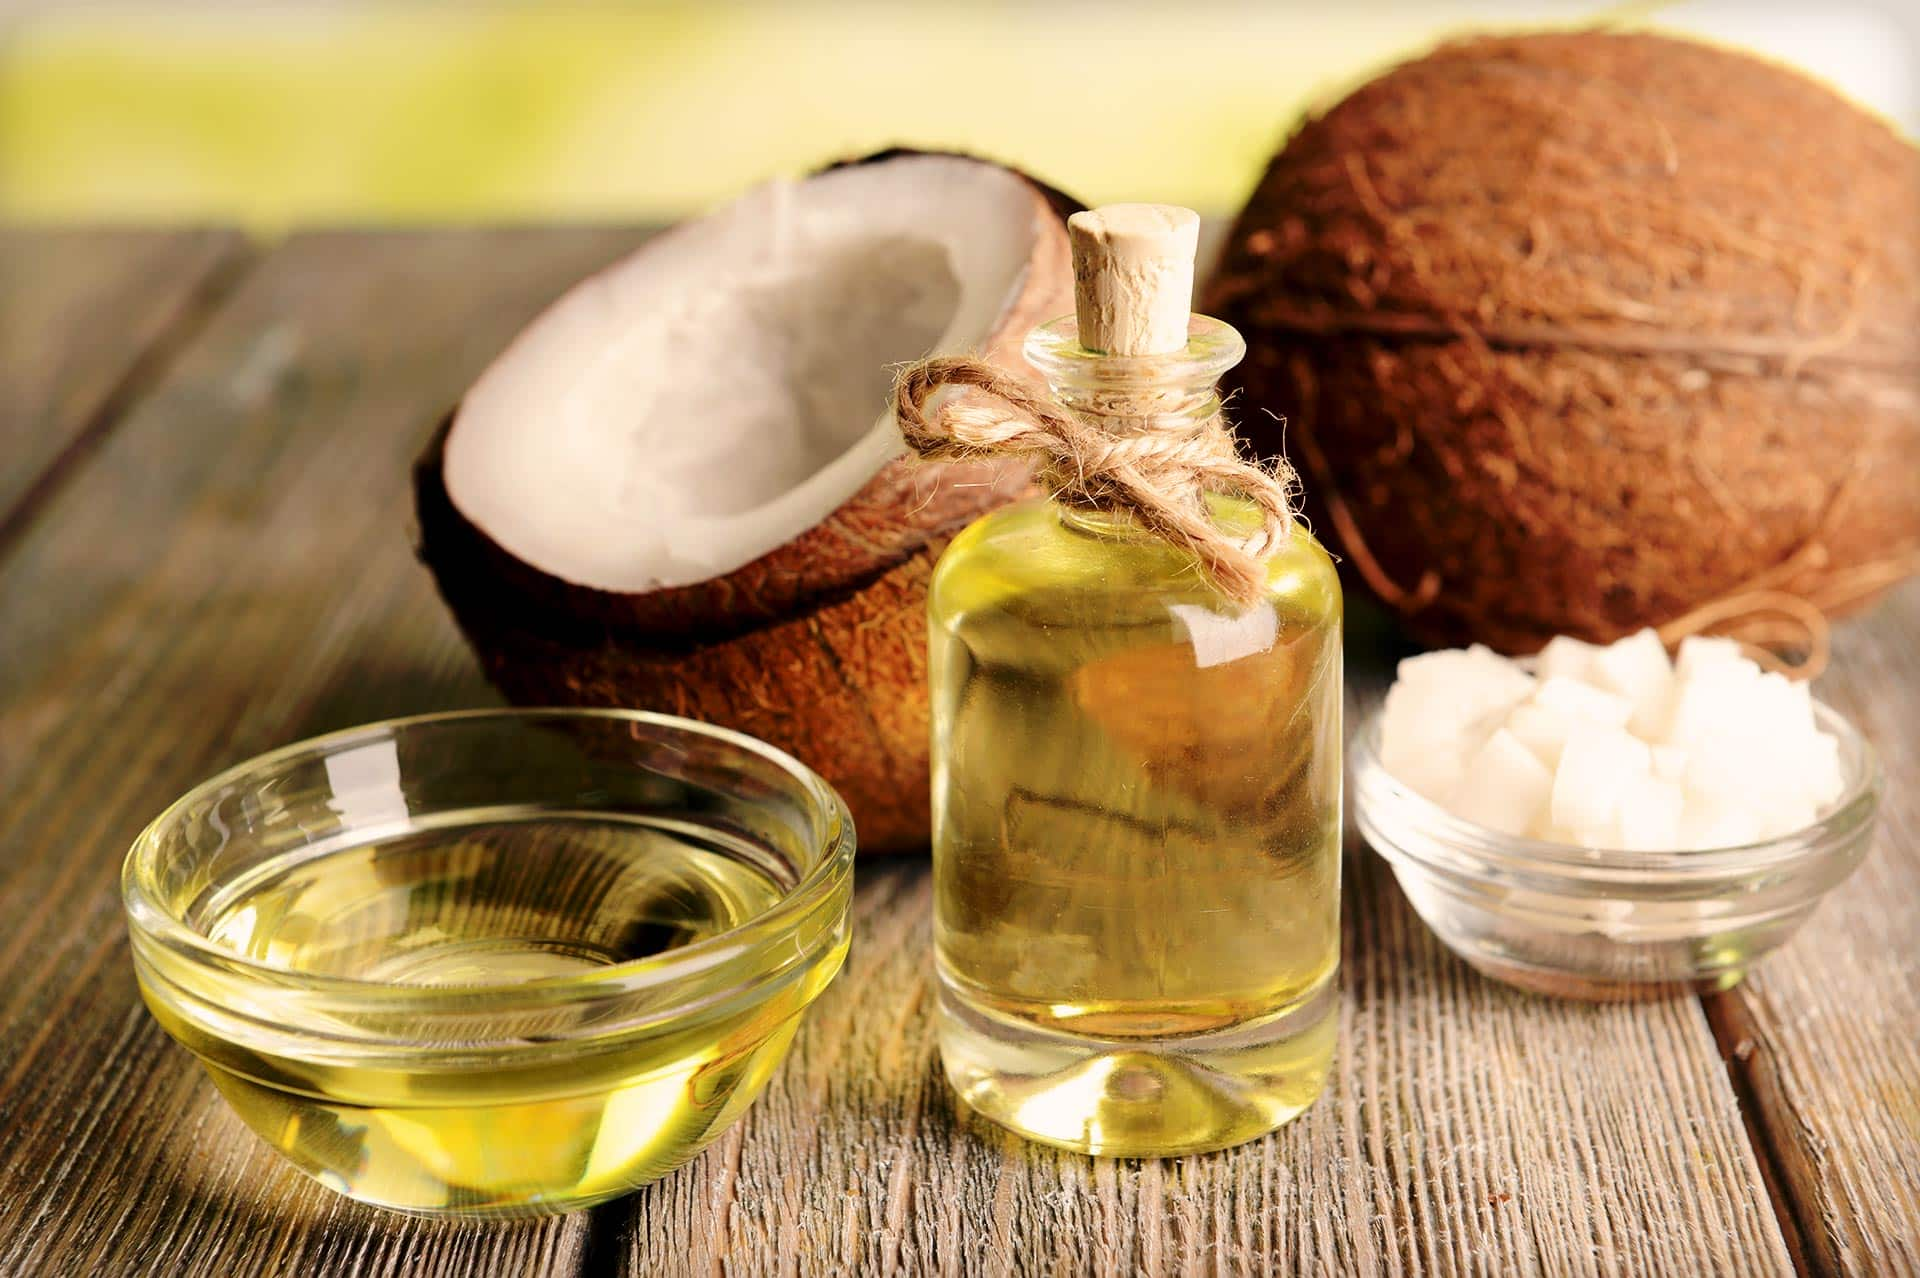 Onnit mct oil coconut oil featured